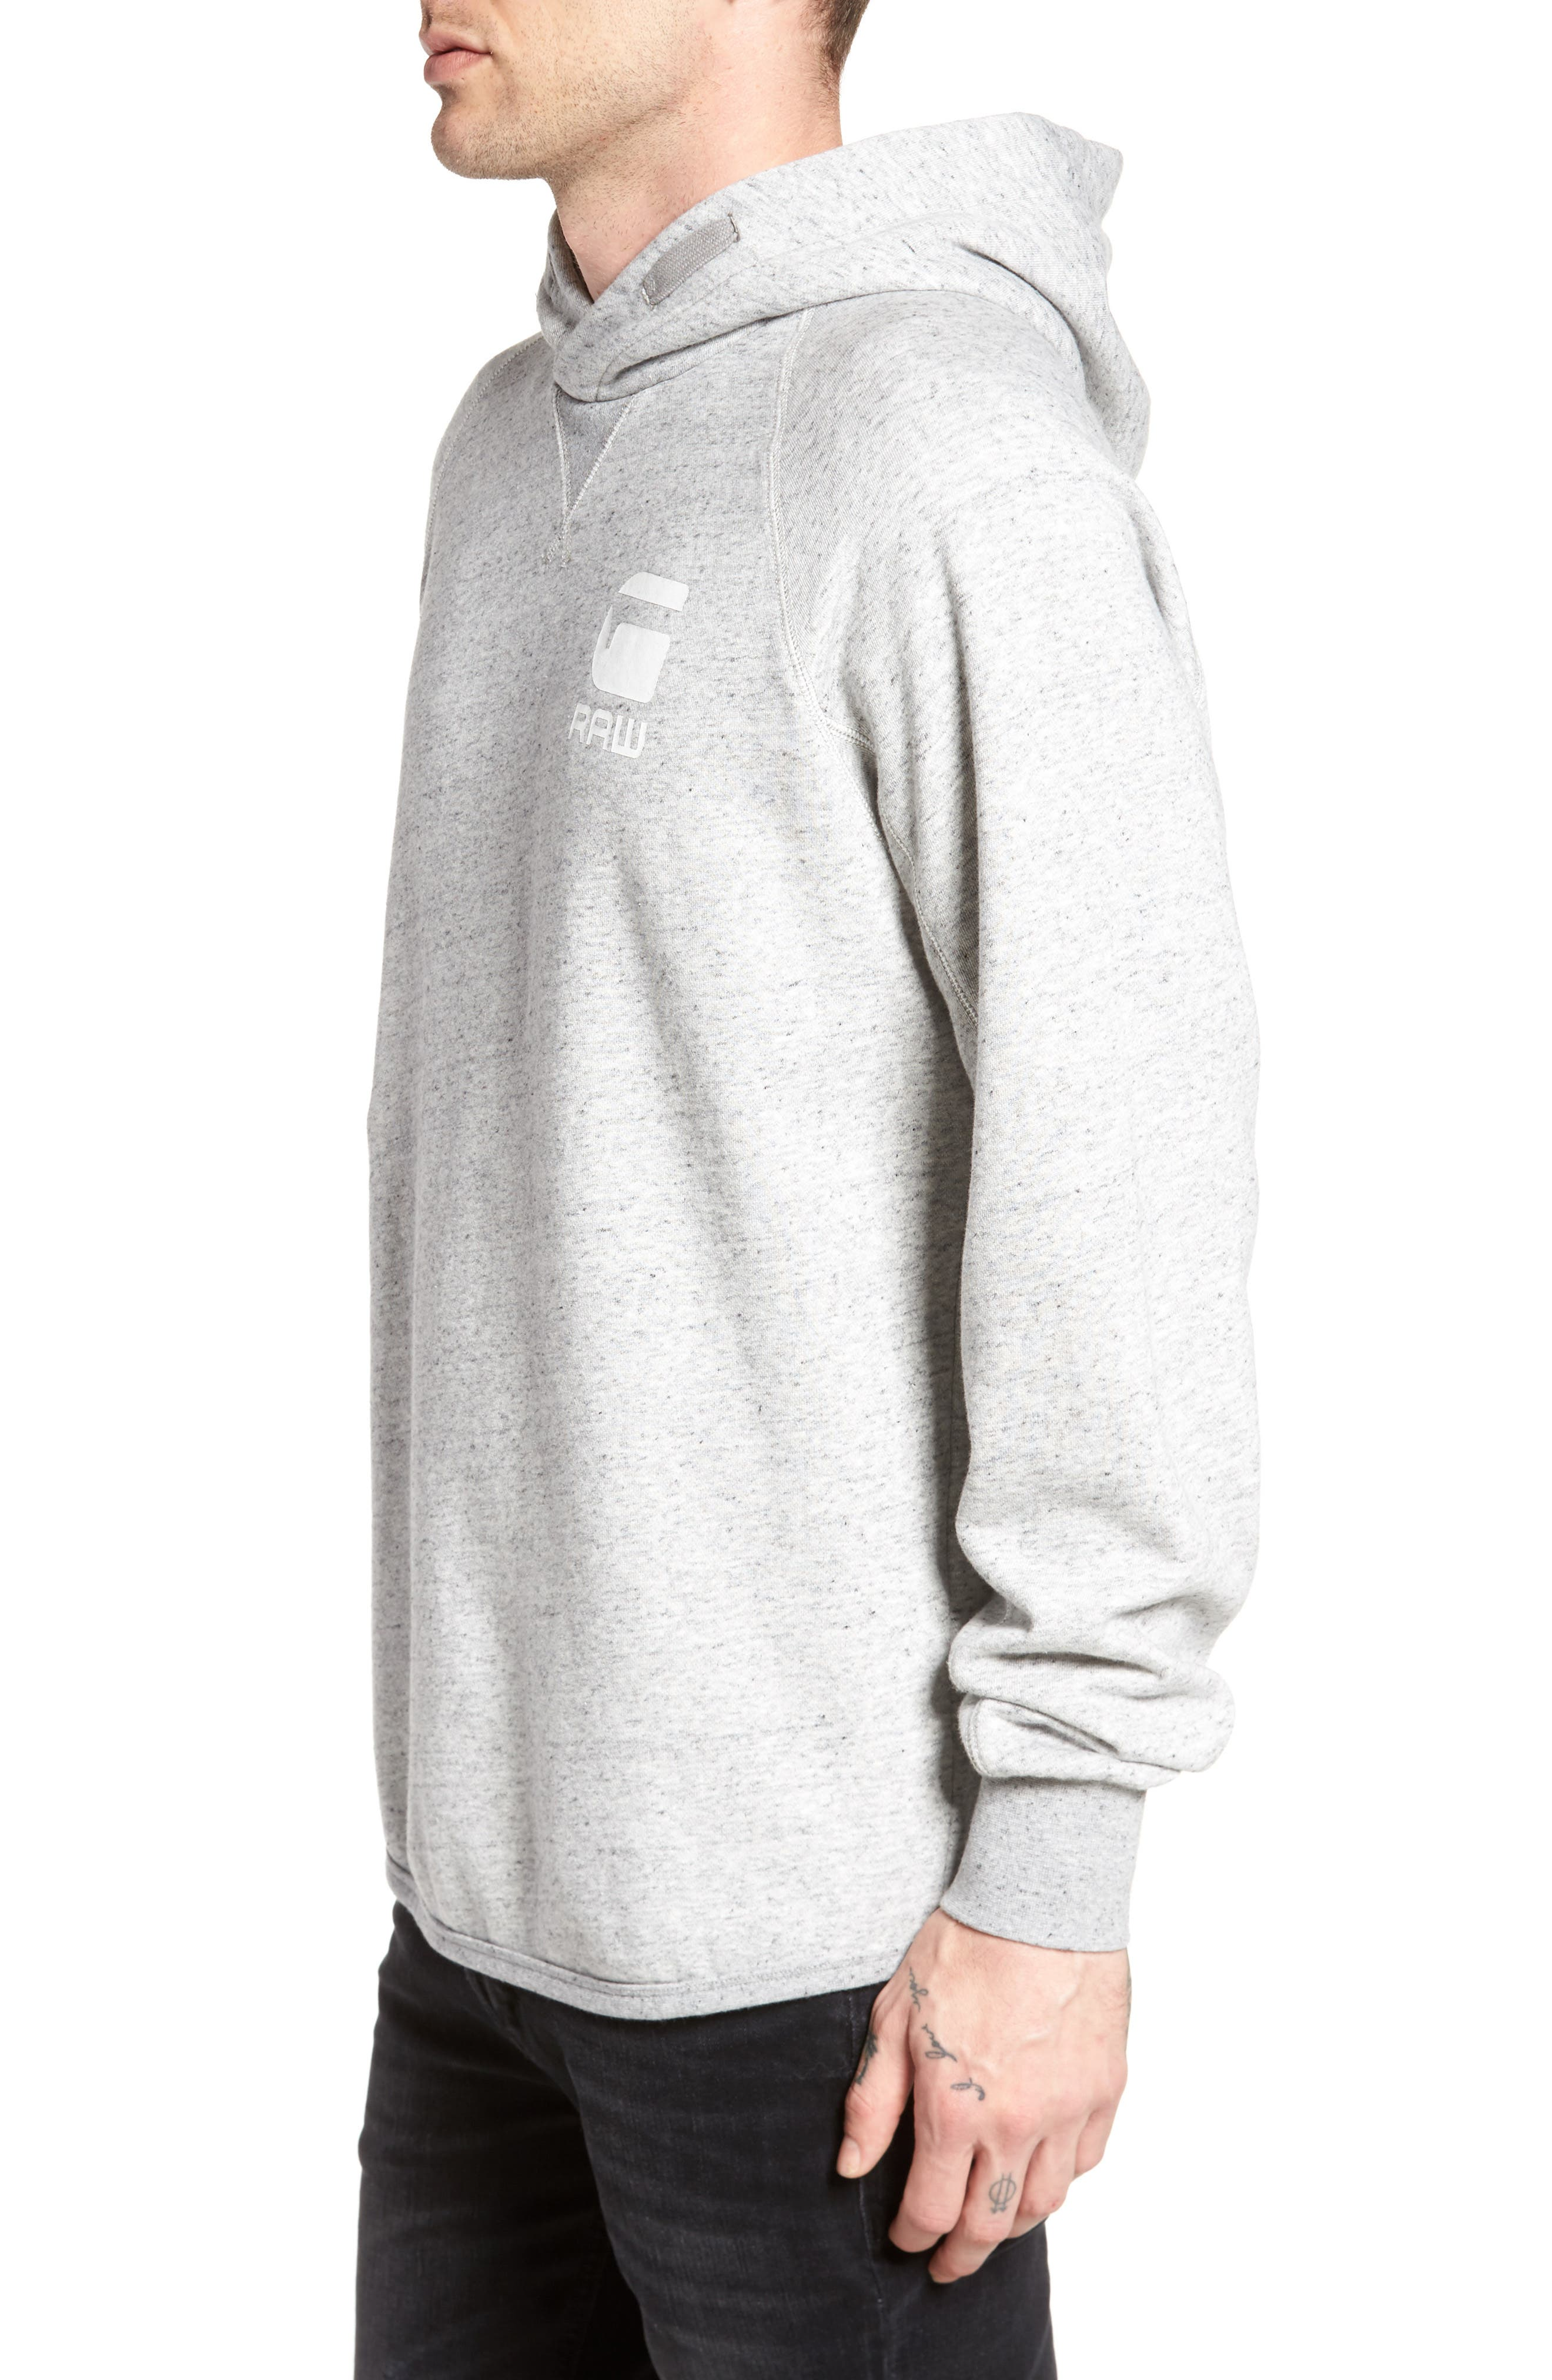 Callow Pullover Hoodie,                             Alternate thumbnail 3, color,                             020